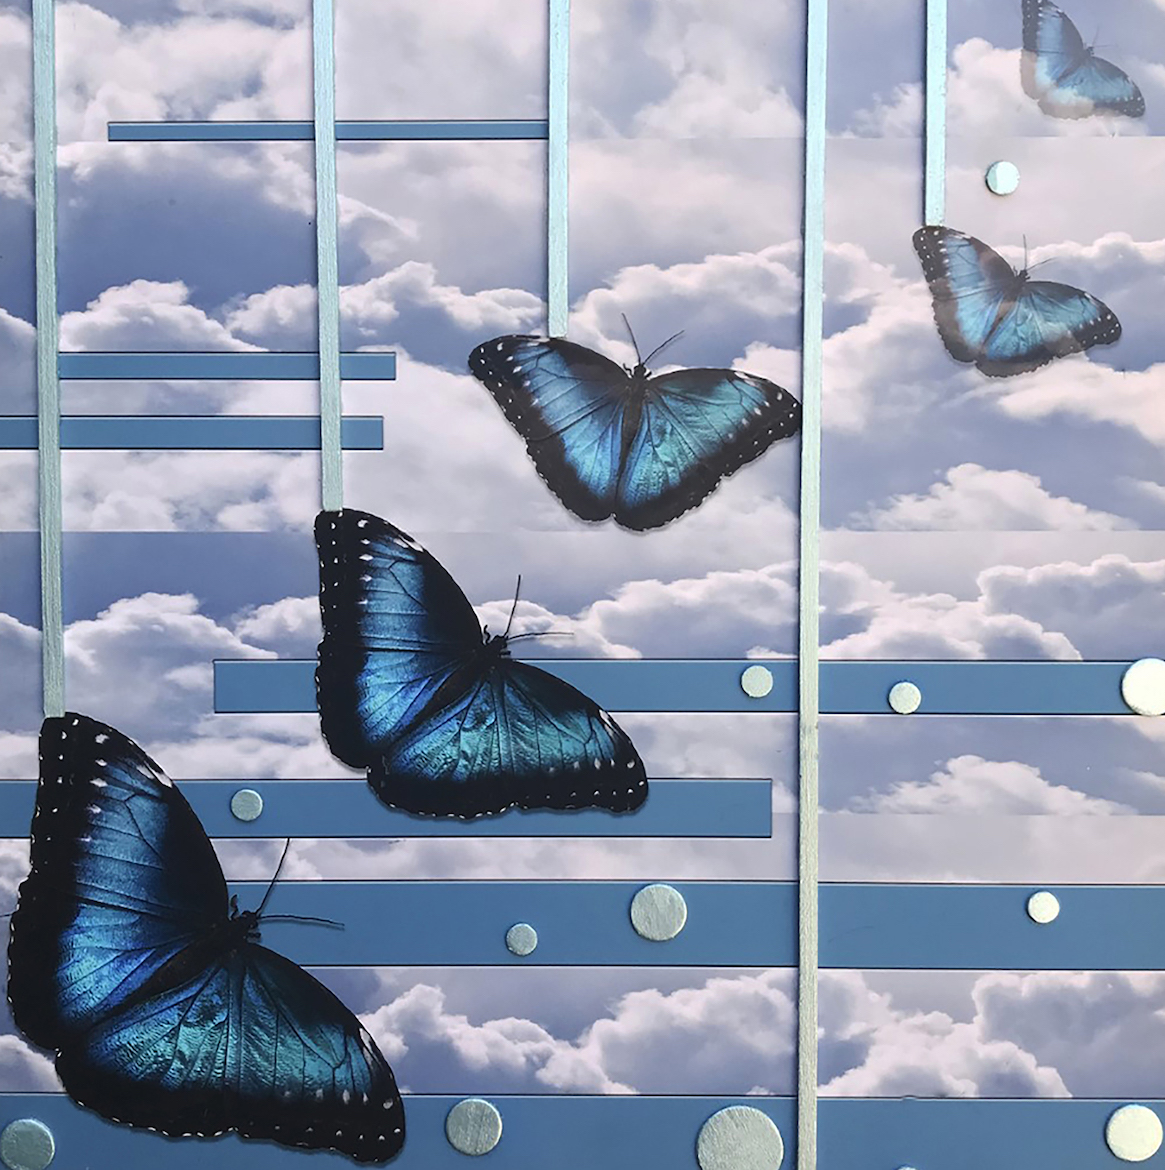 Andrea J. Sharon: Metamorphosis-Blue Morpho